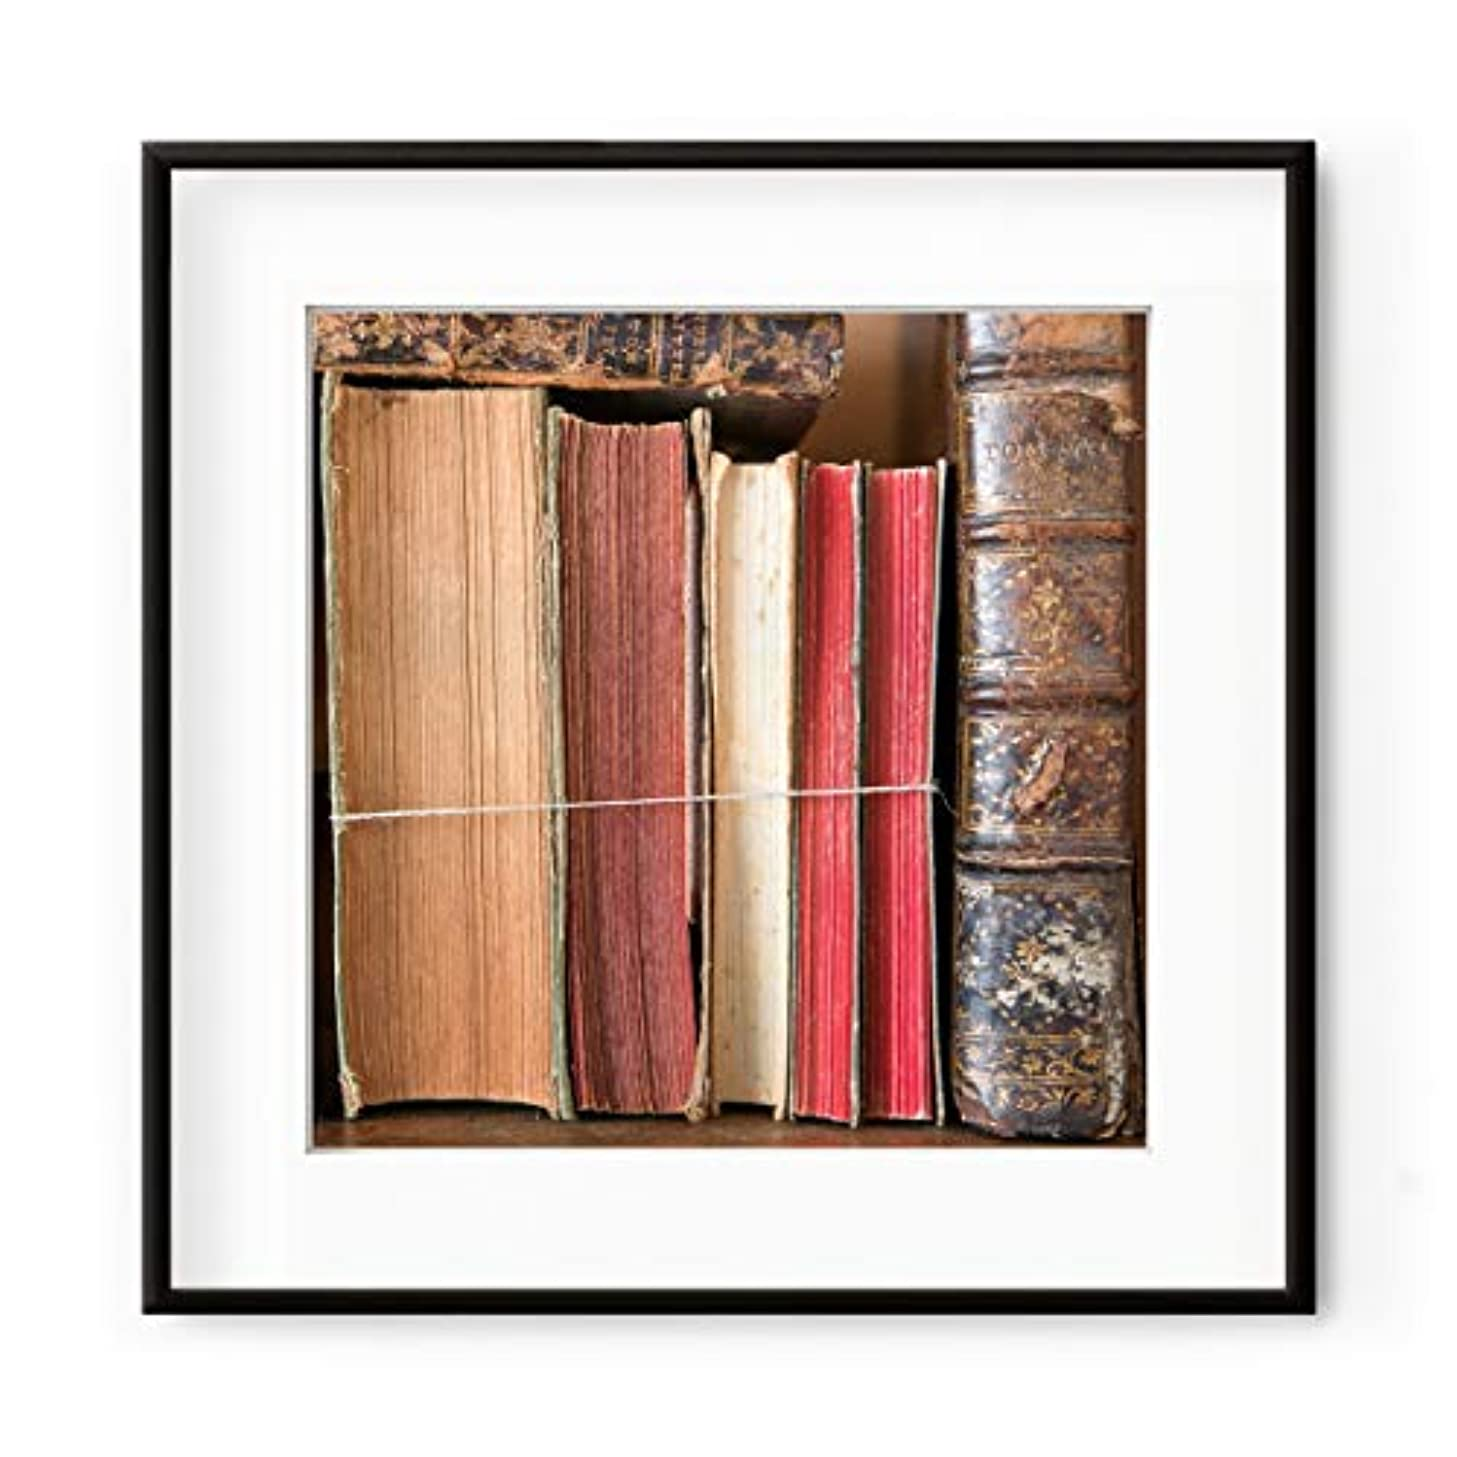 Old Books, Solid Oak Natural Frame, with Mount, Multicolored, 60x60